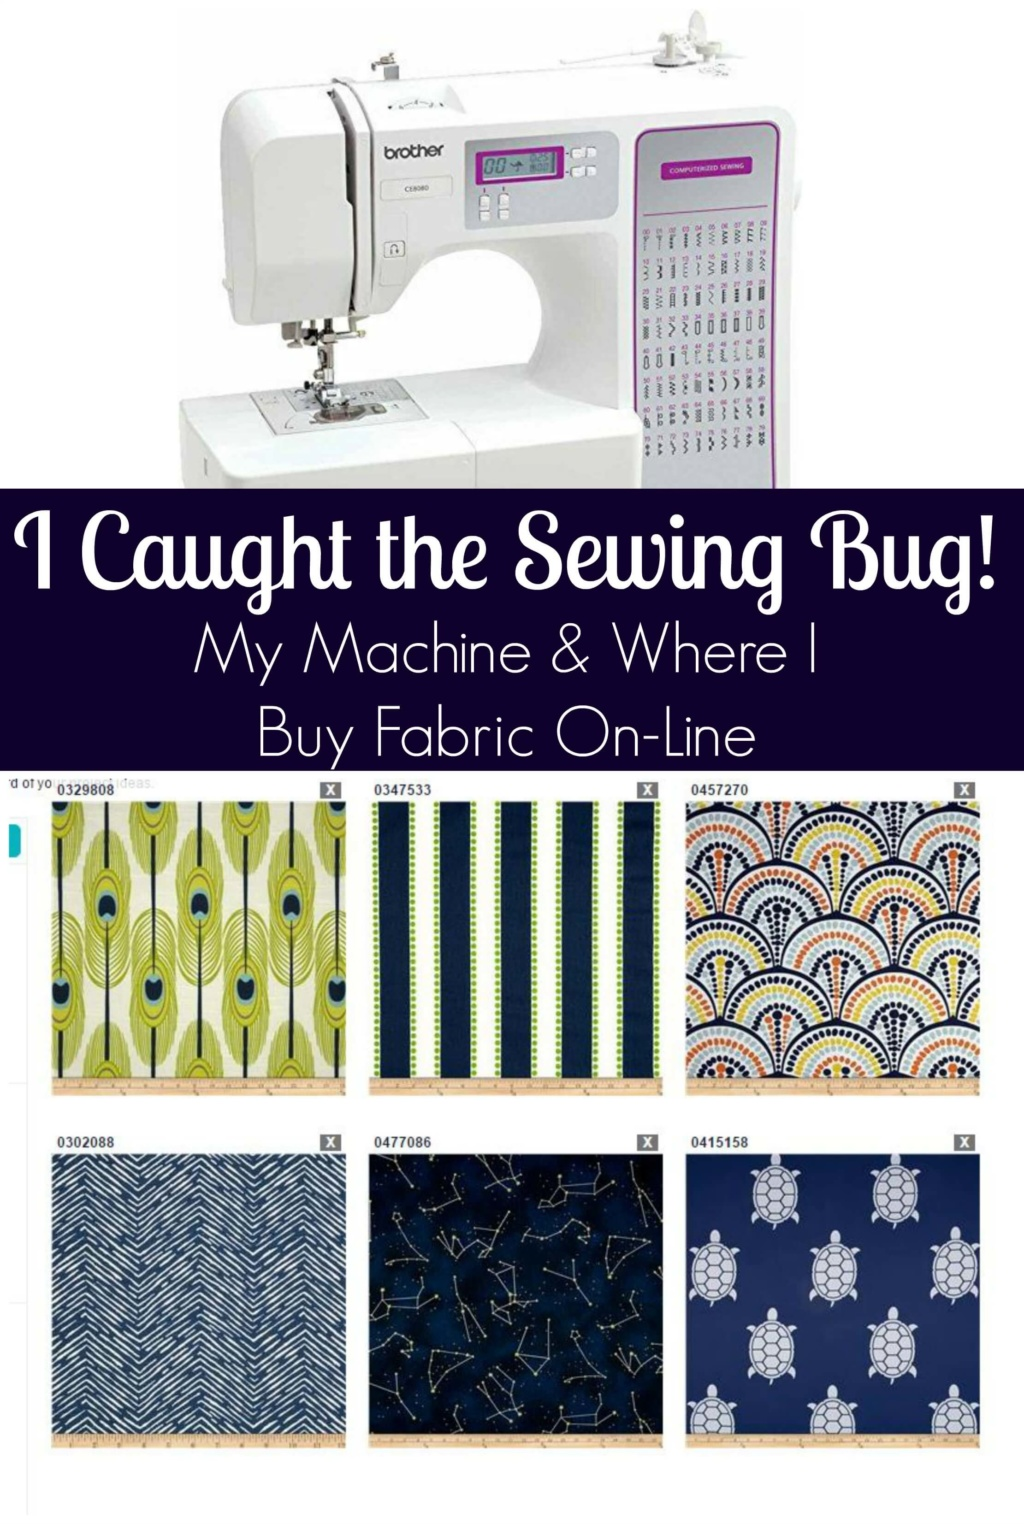 The Sewing Bug